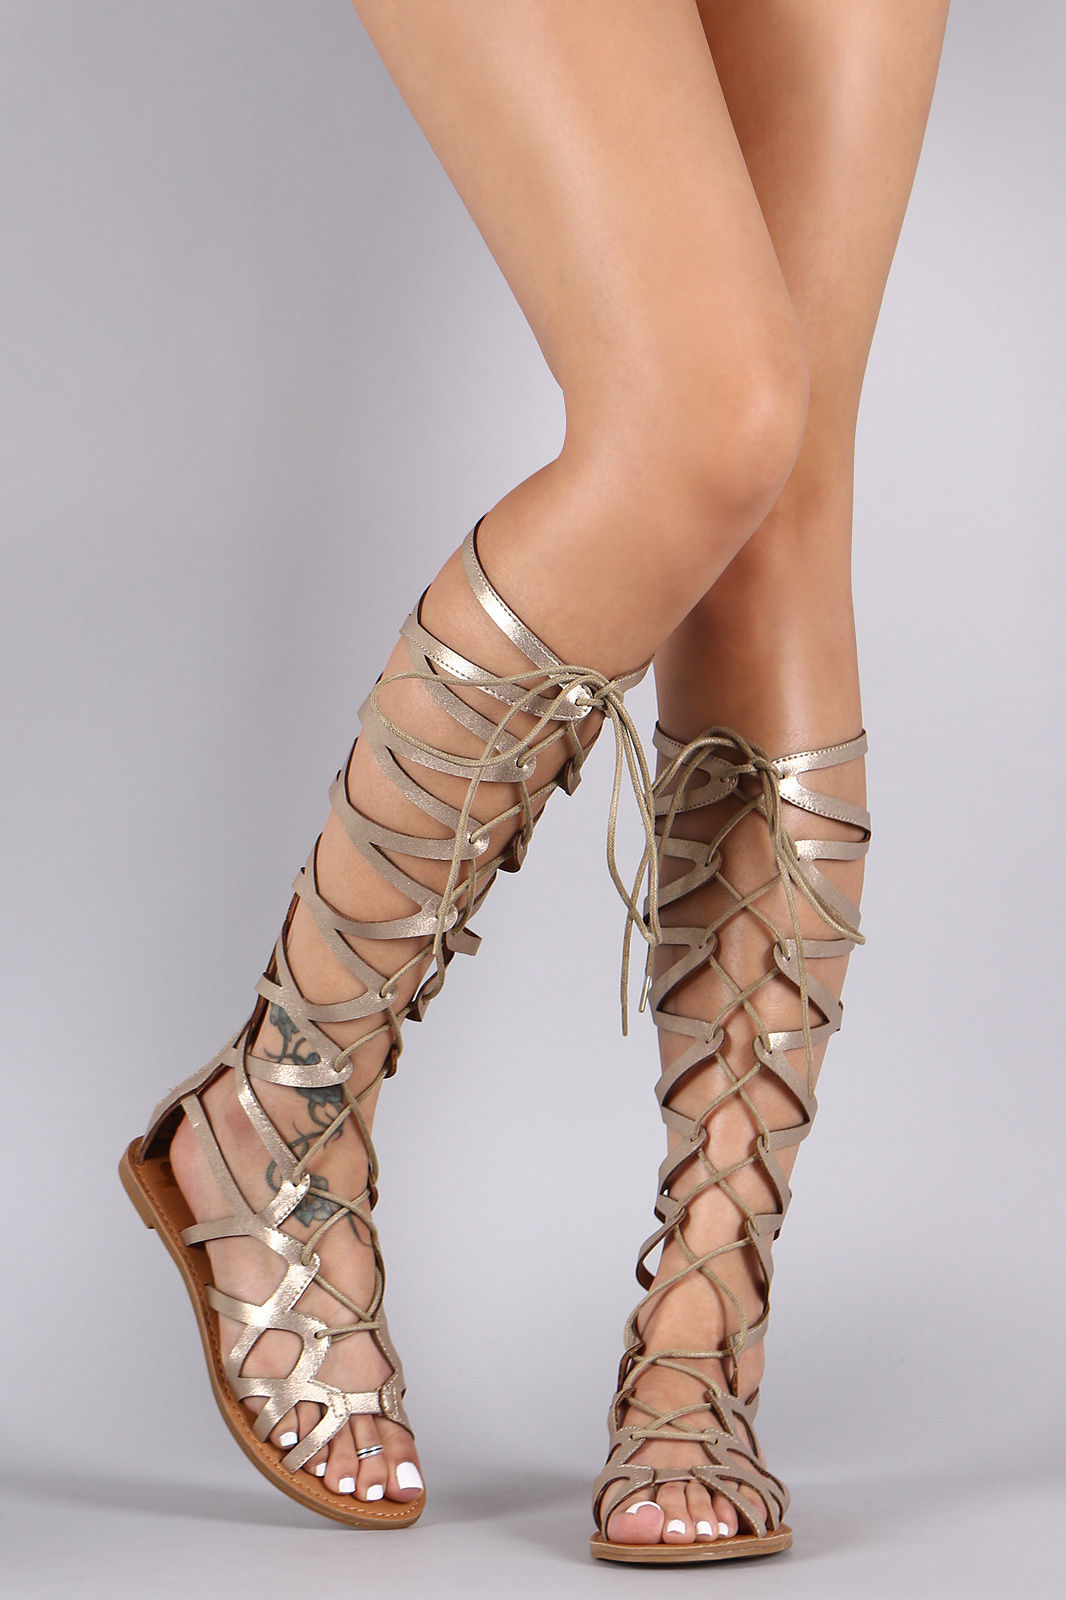 Lace Up Gladiator Sandals Craftysandals Com